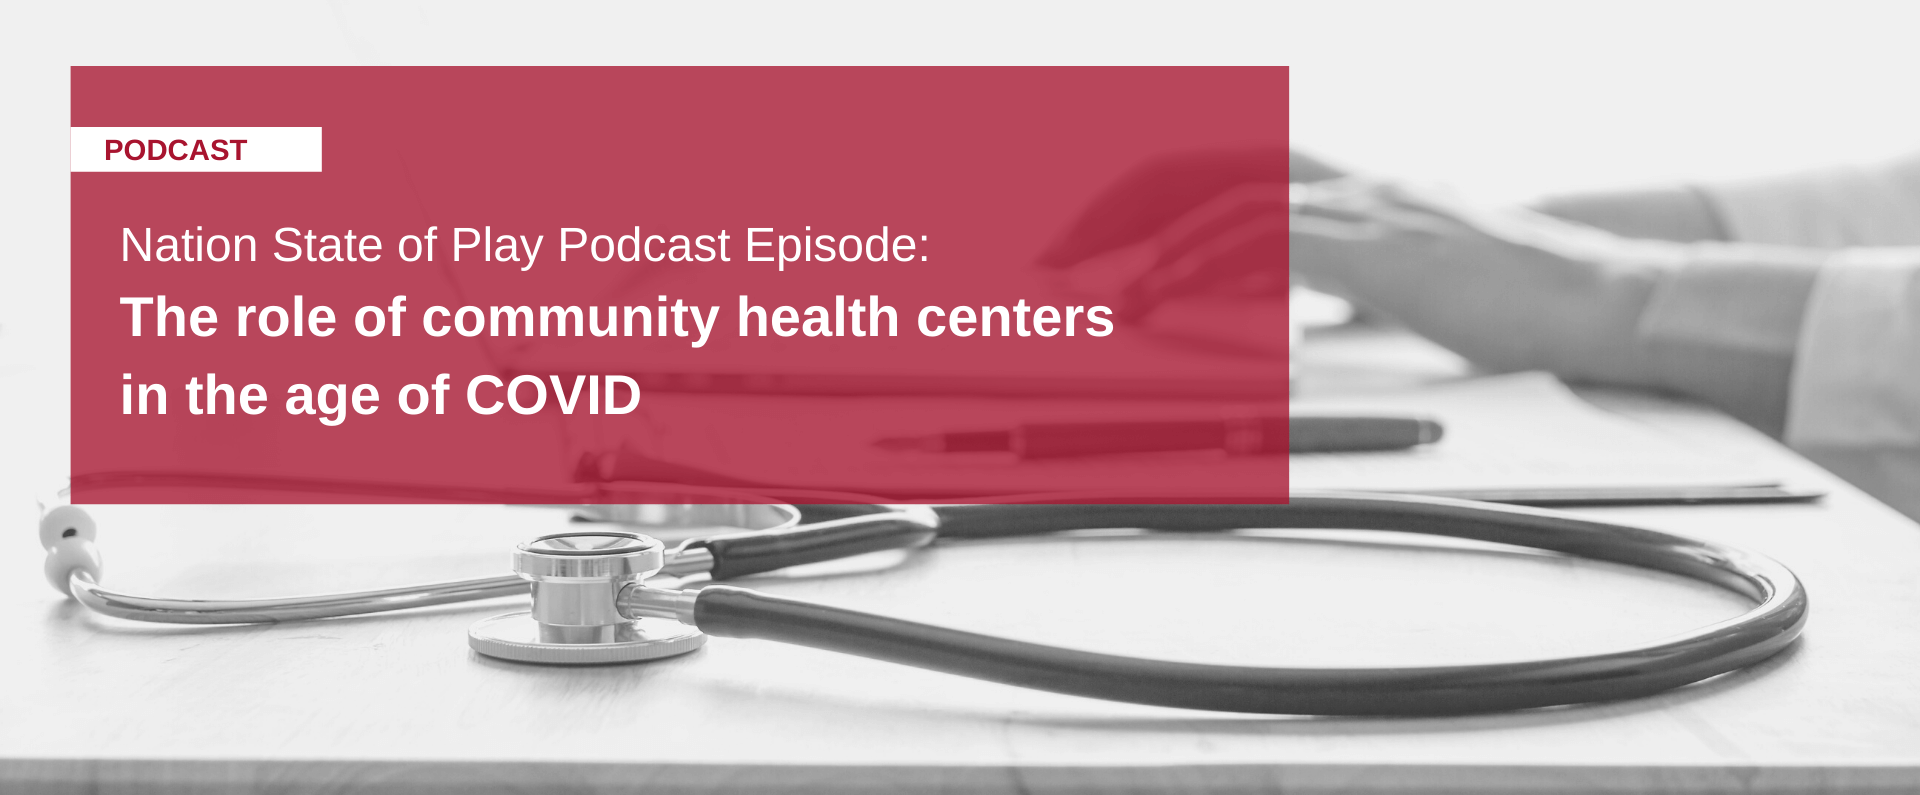 the role of community health centers in the age of COVID